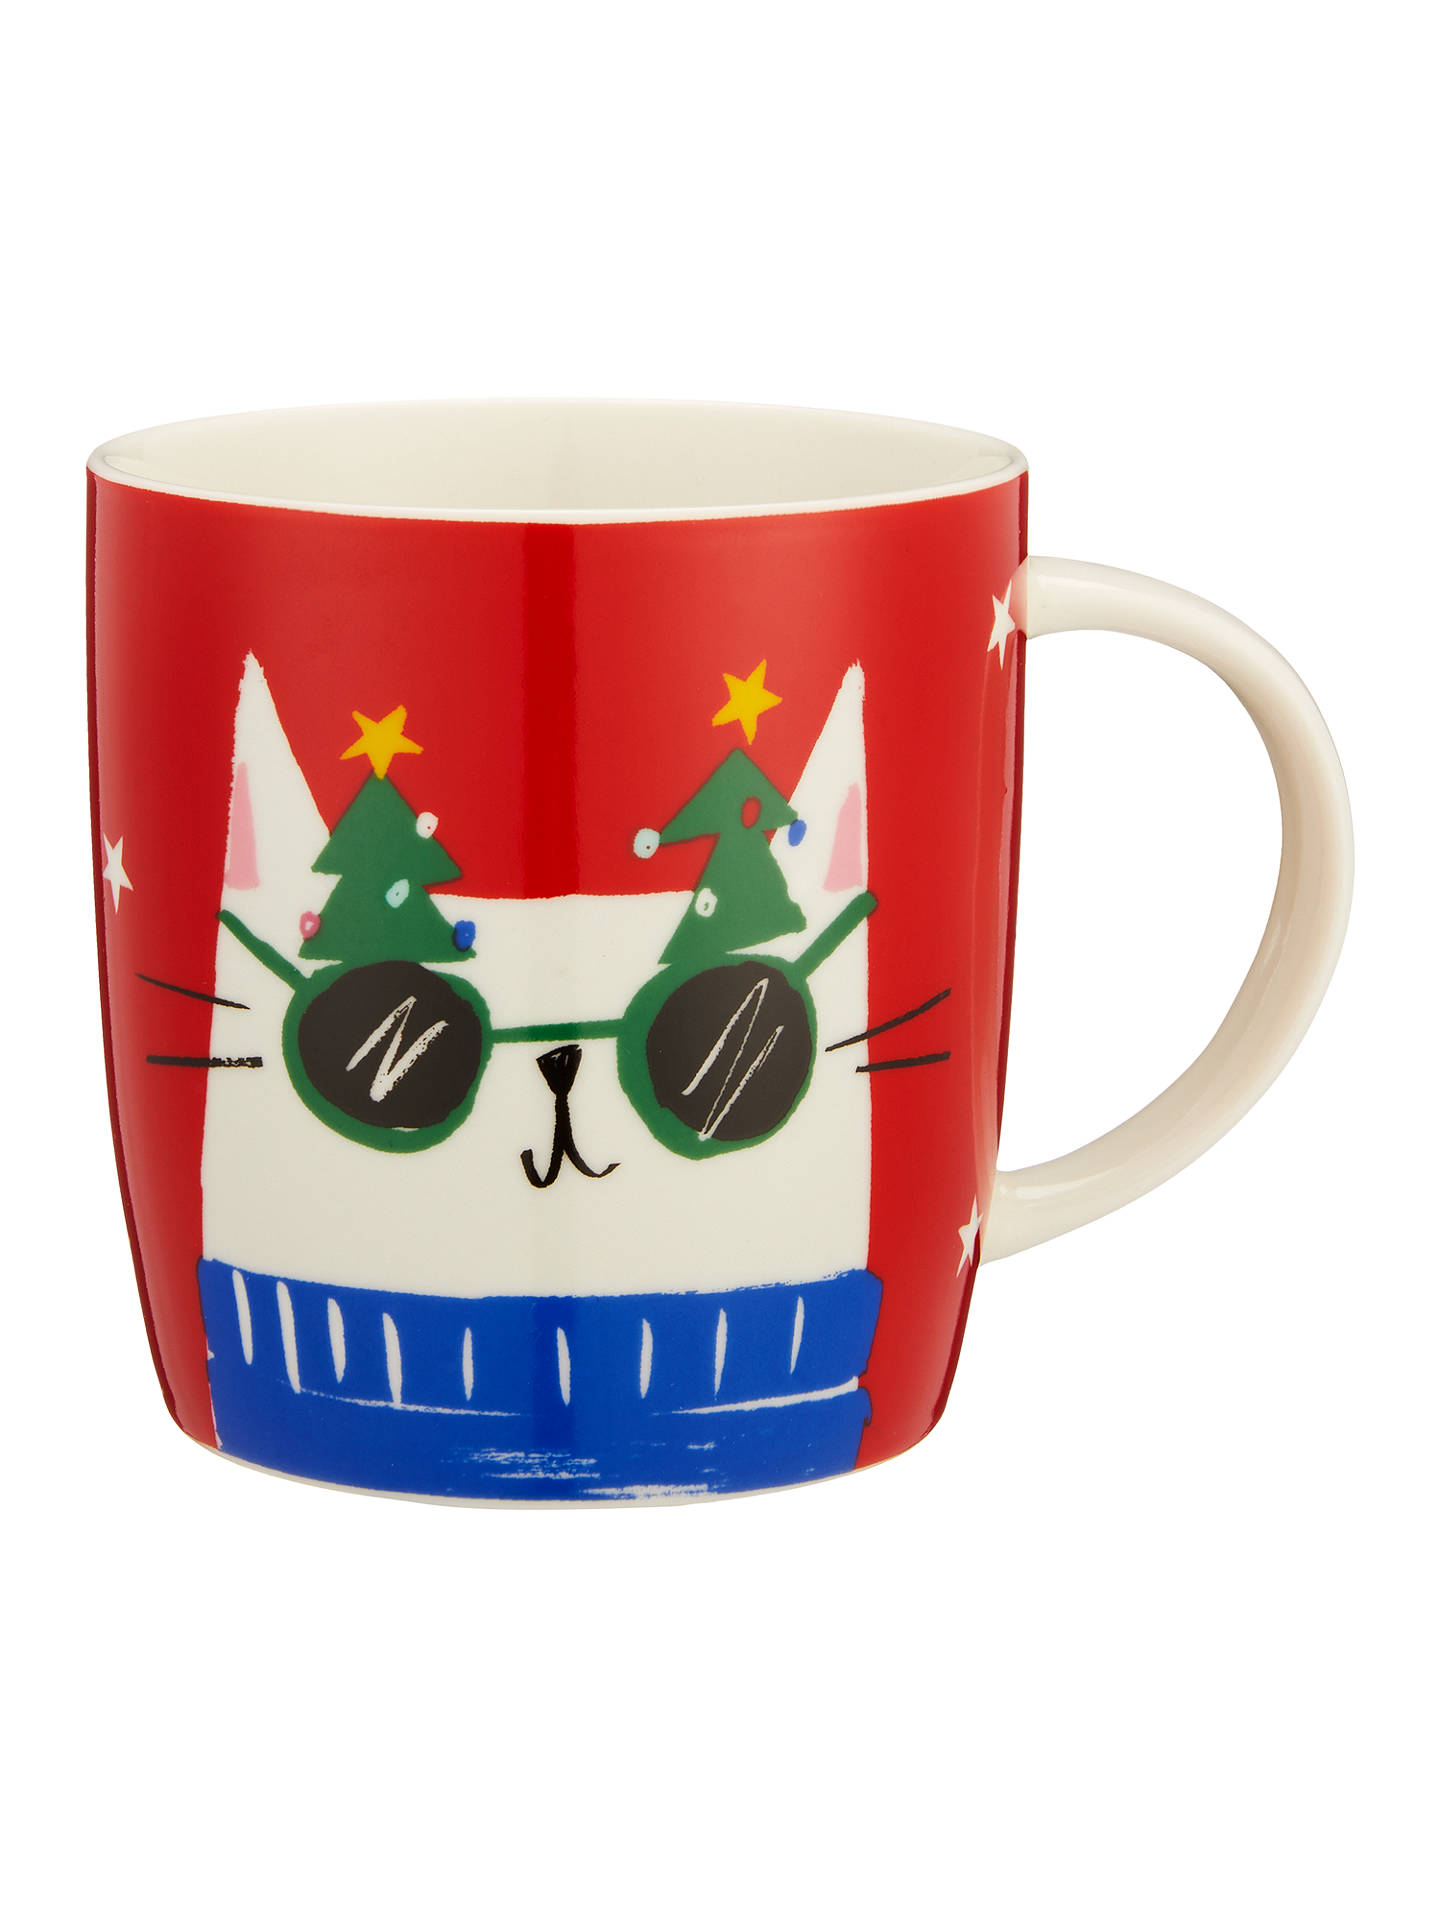 BuyJohn Lewis & Partners Cat China Mug In A Money Box Tin, Red, 350ml Online at johnlewis.com